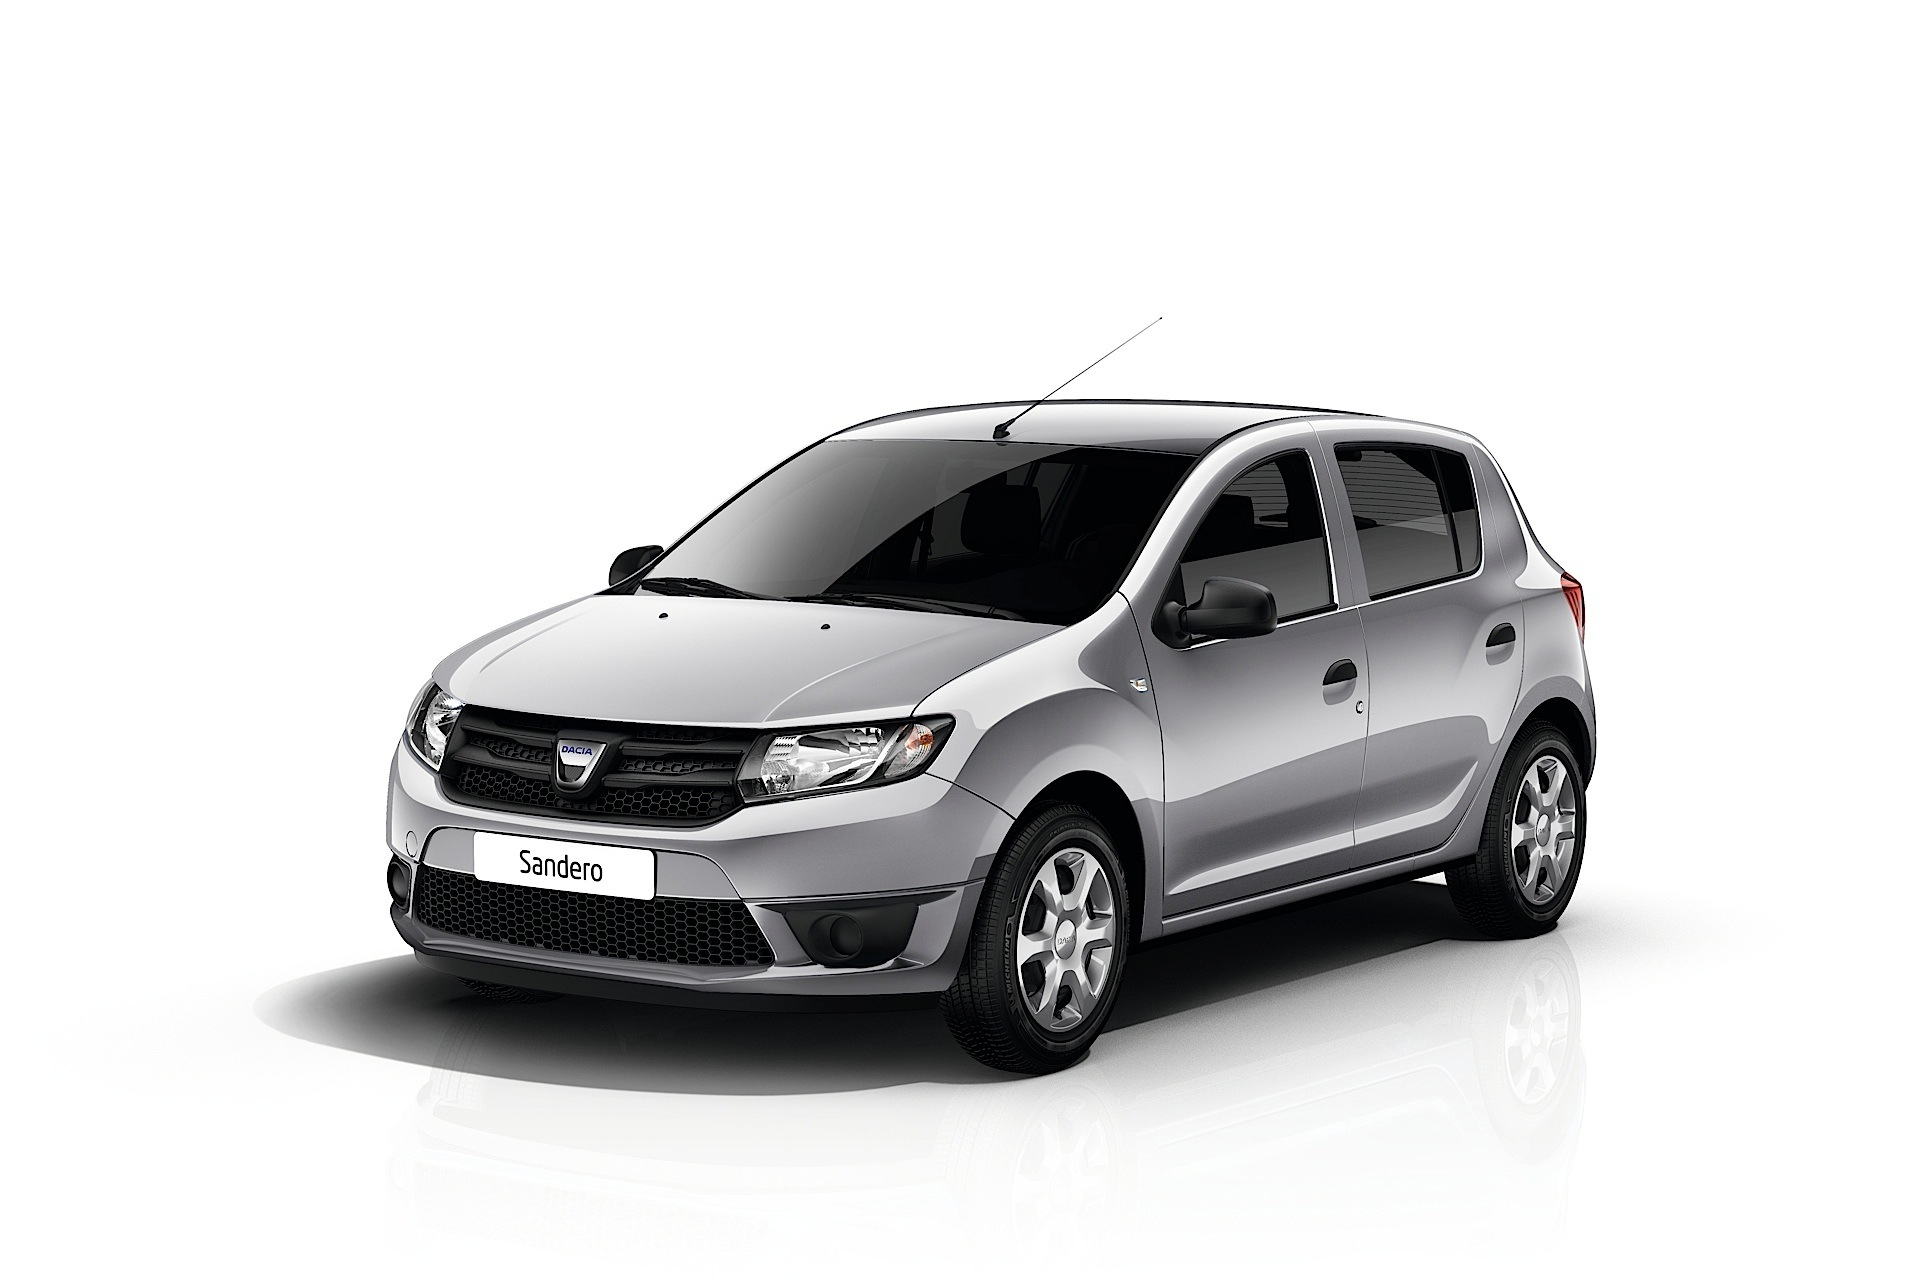 dacia sandero 2 specs photos 2012 2013 2014 2015. Black Bedroom Furniture Sets. Home Design Ideas